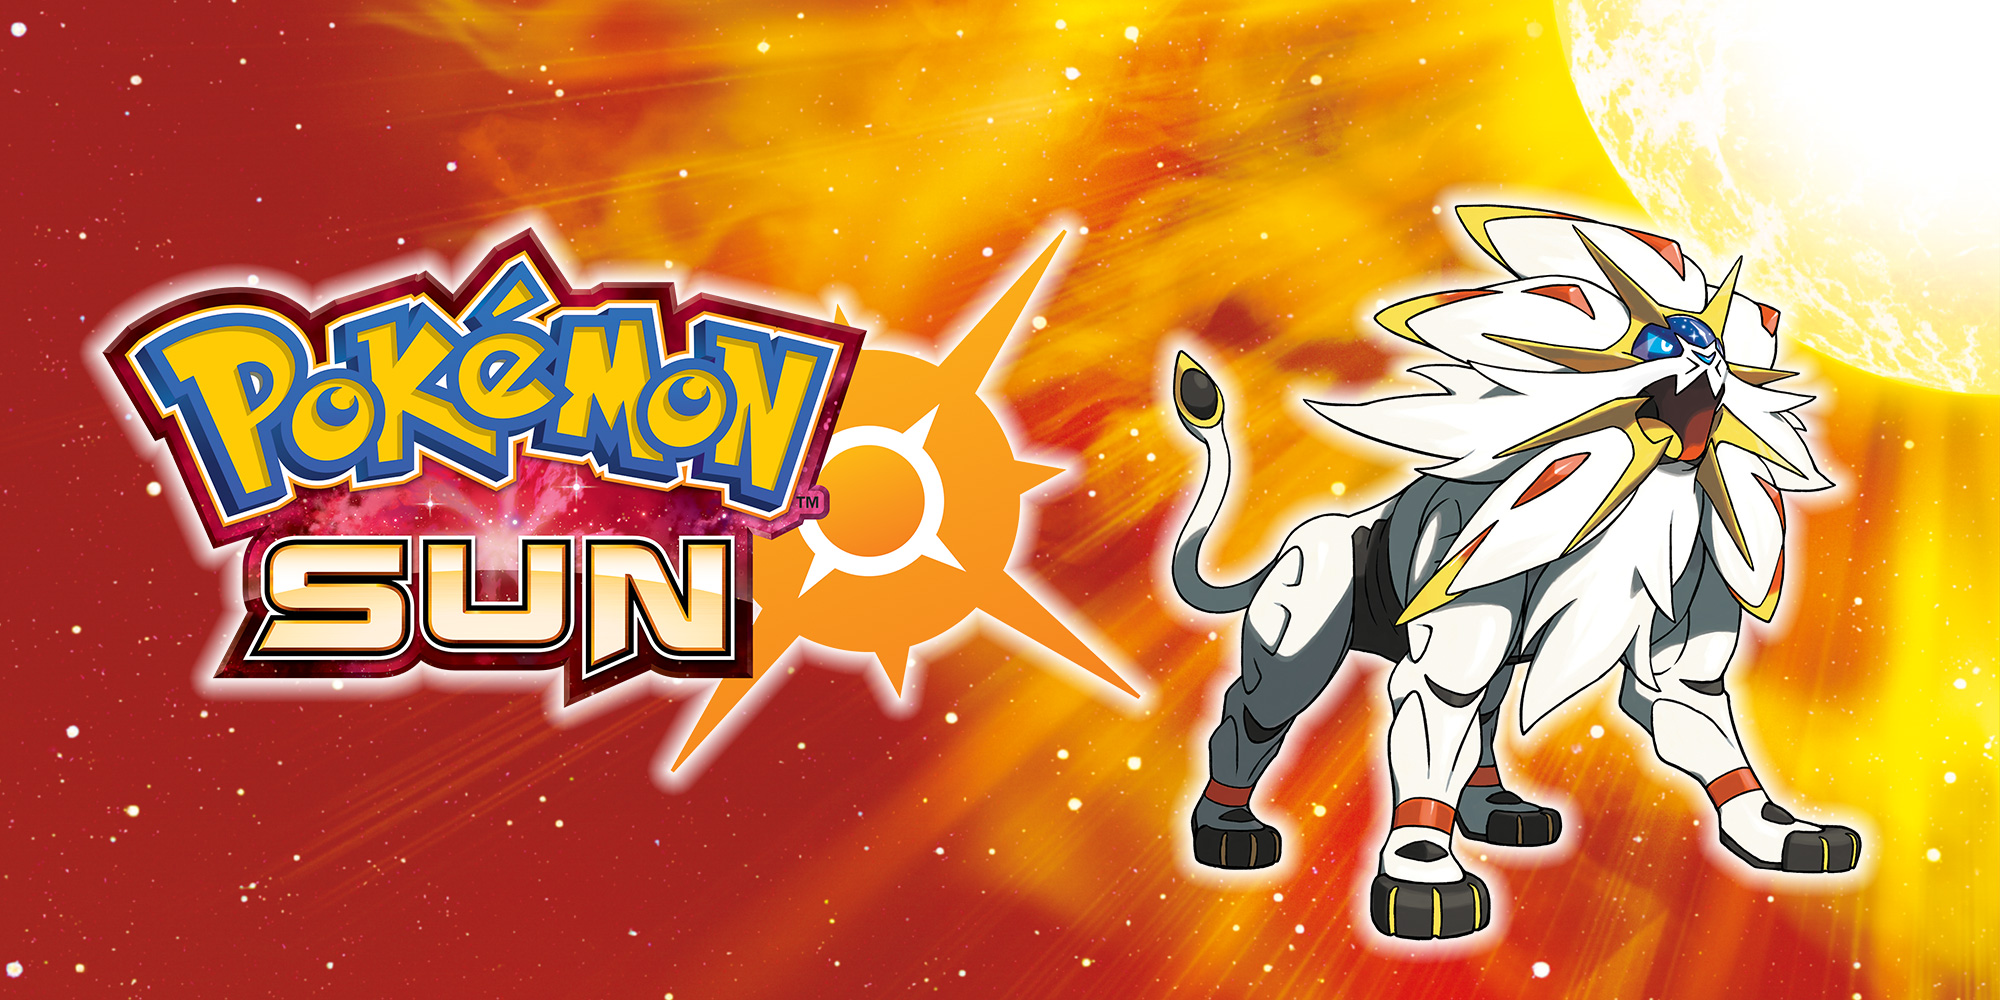 https://i1.wp.com/cdn02.nintendo-europe.com/media/images/10_share_images/games_15/nintendo_3ds_25/H2x1_3DS_PokemonSun_enGB.jpg